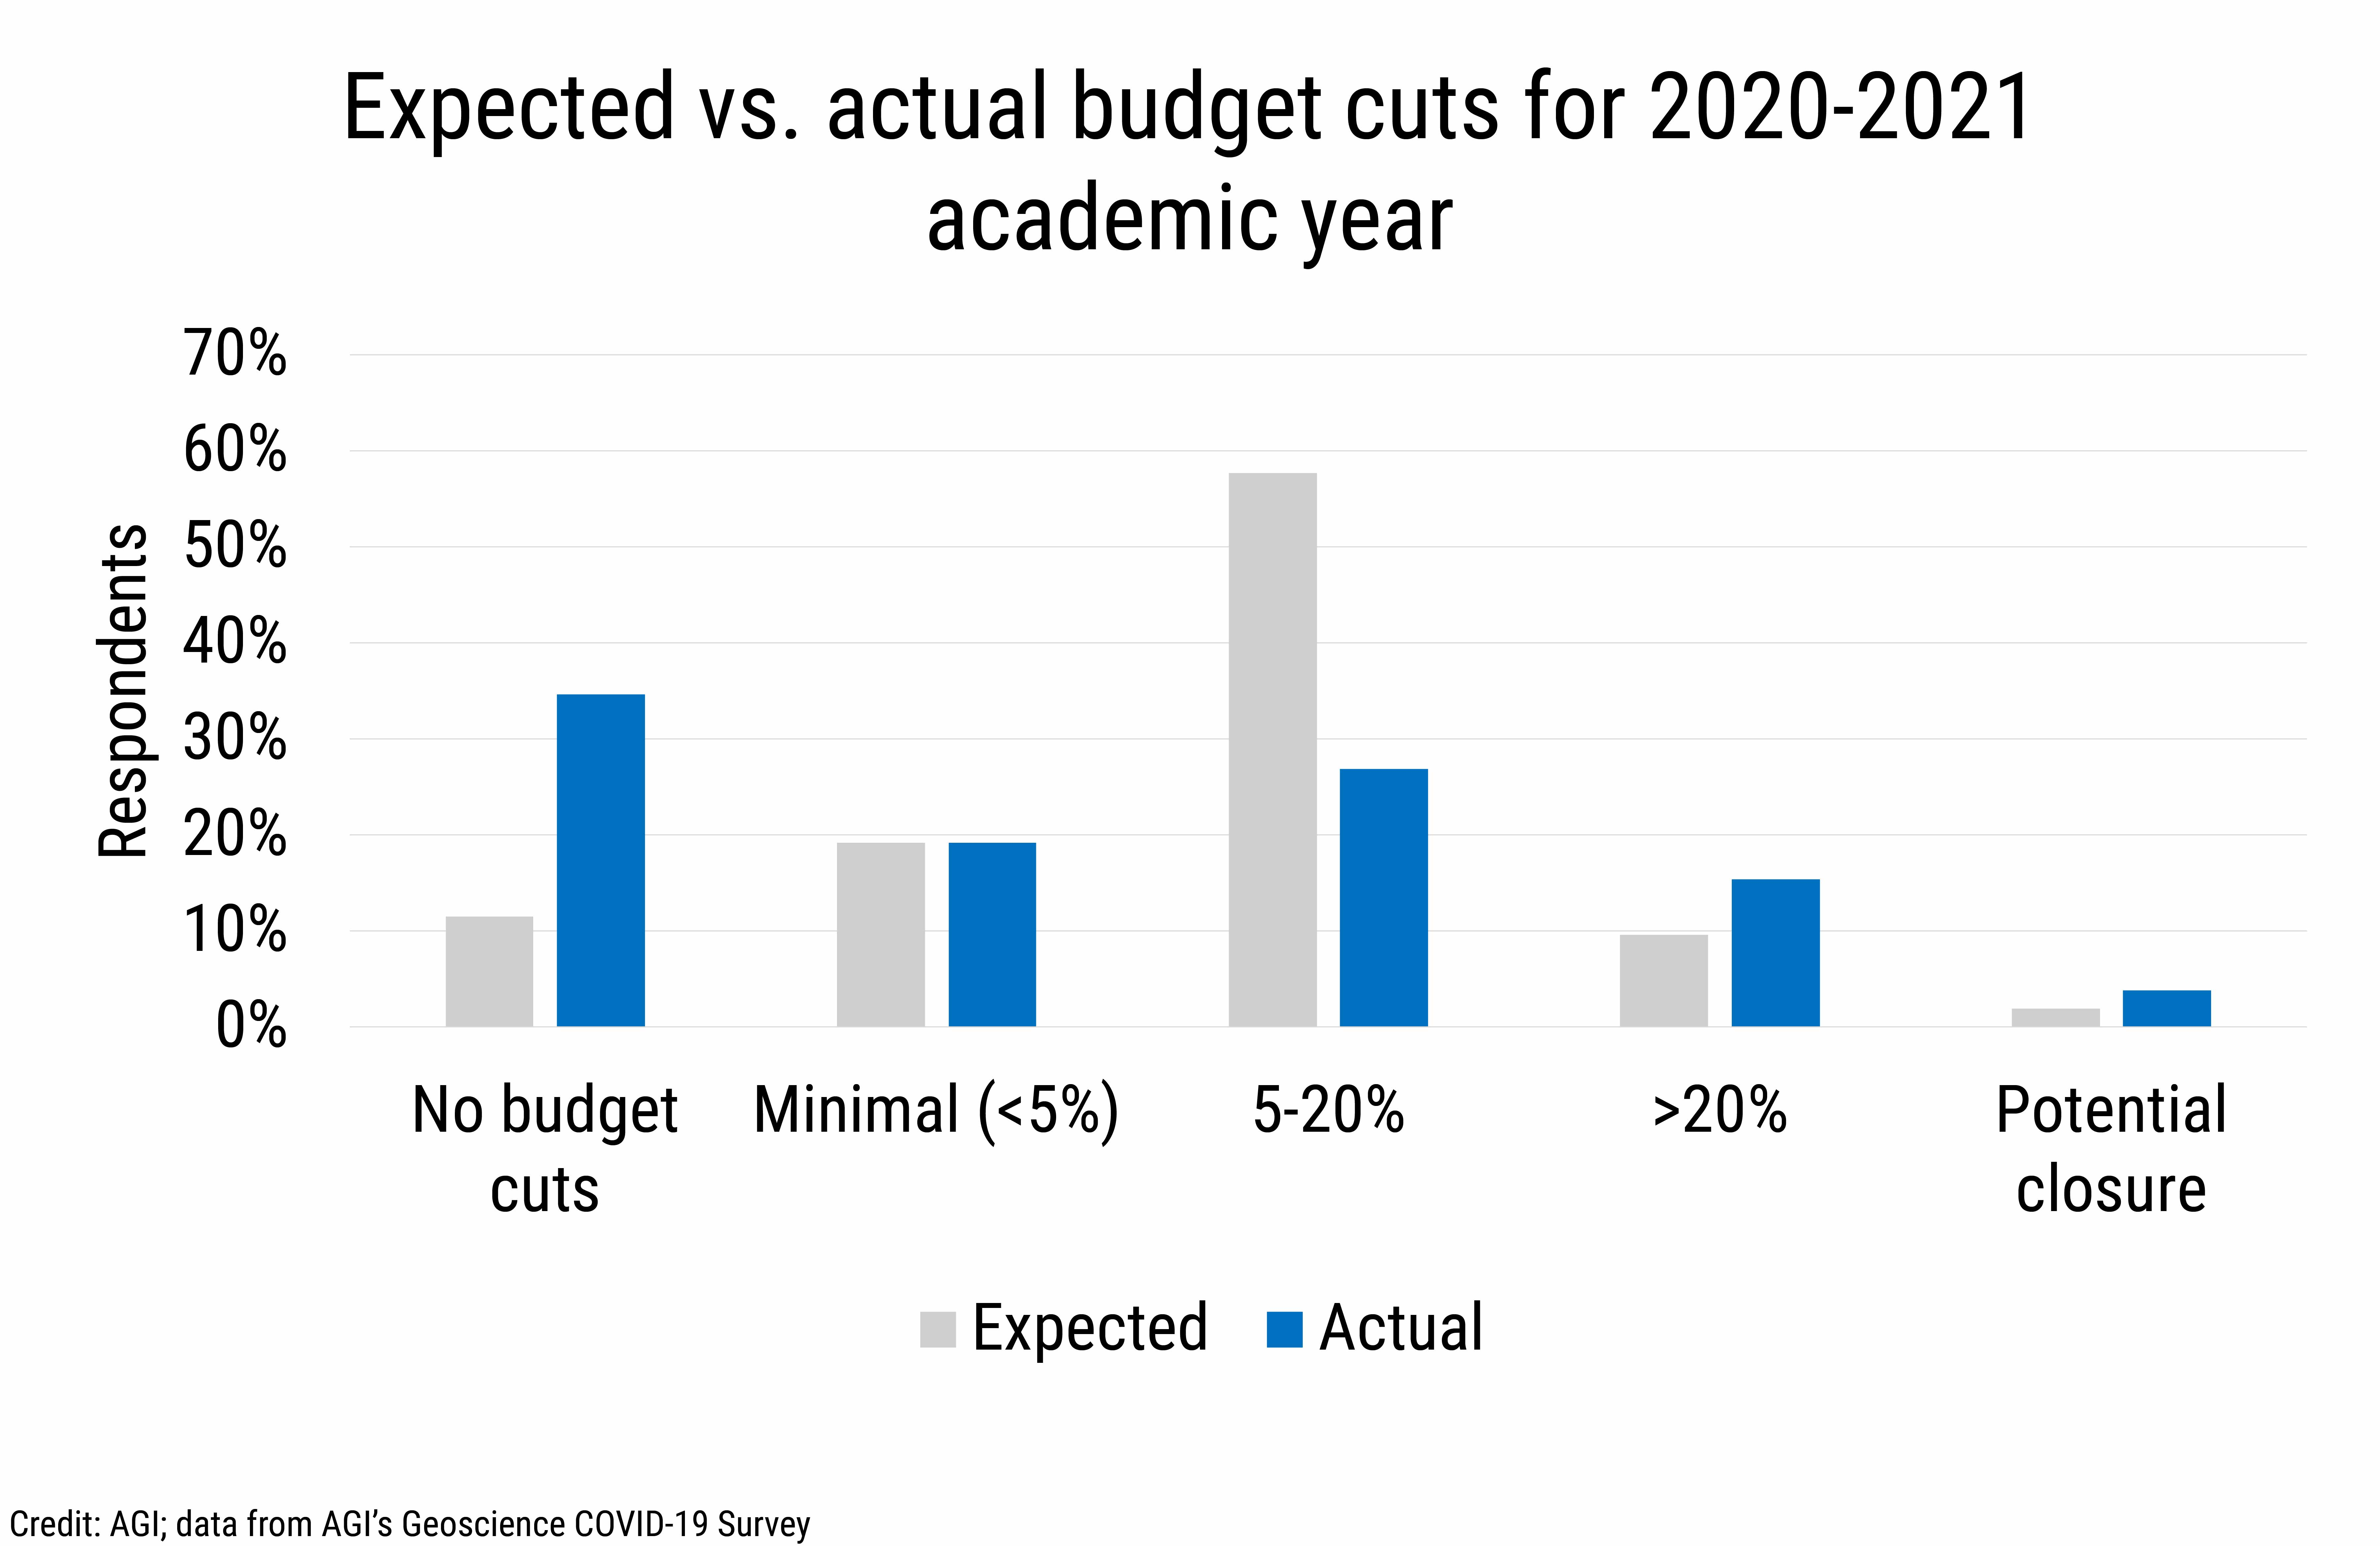 DB_2020-028 chart 01:  Expected vs. actual budget cuts for 2020-2021 academic year (Credit: AGI; data from AGI's Geoscience COVID-19 Survey)